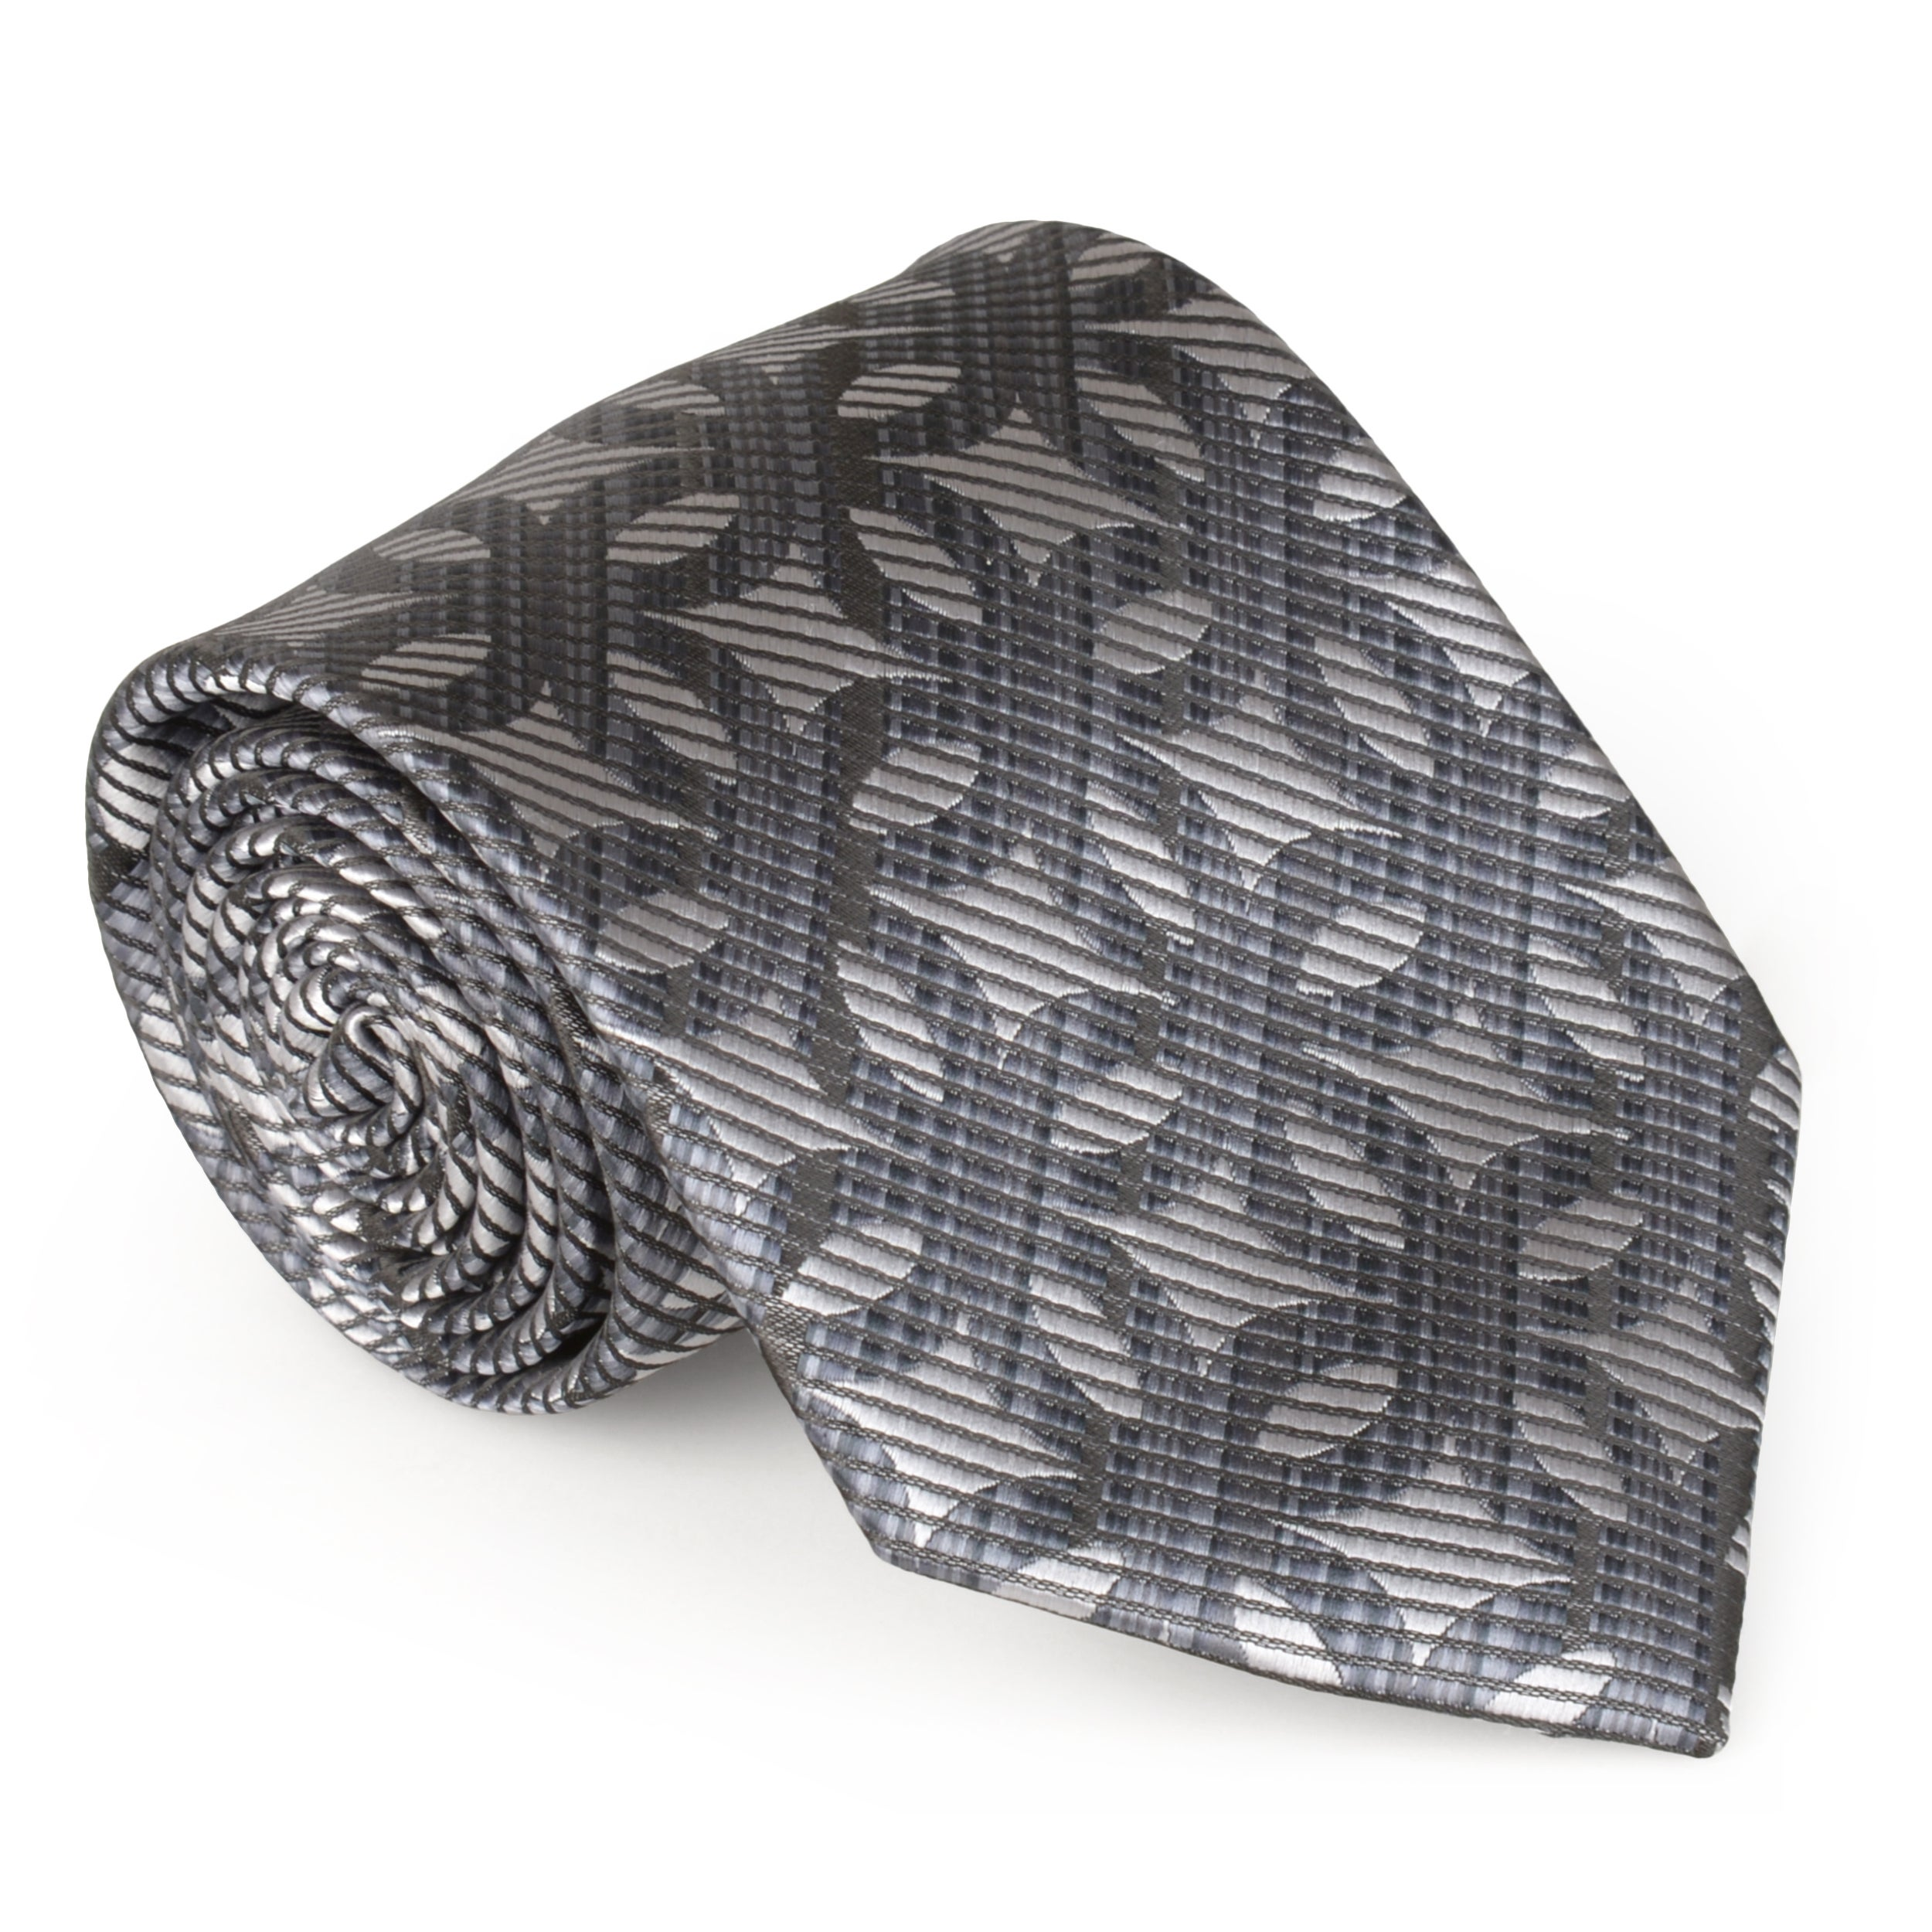 Vance Co. Men's Microfiber Handmade Tie and Hanky Set